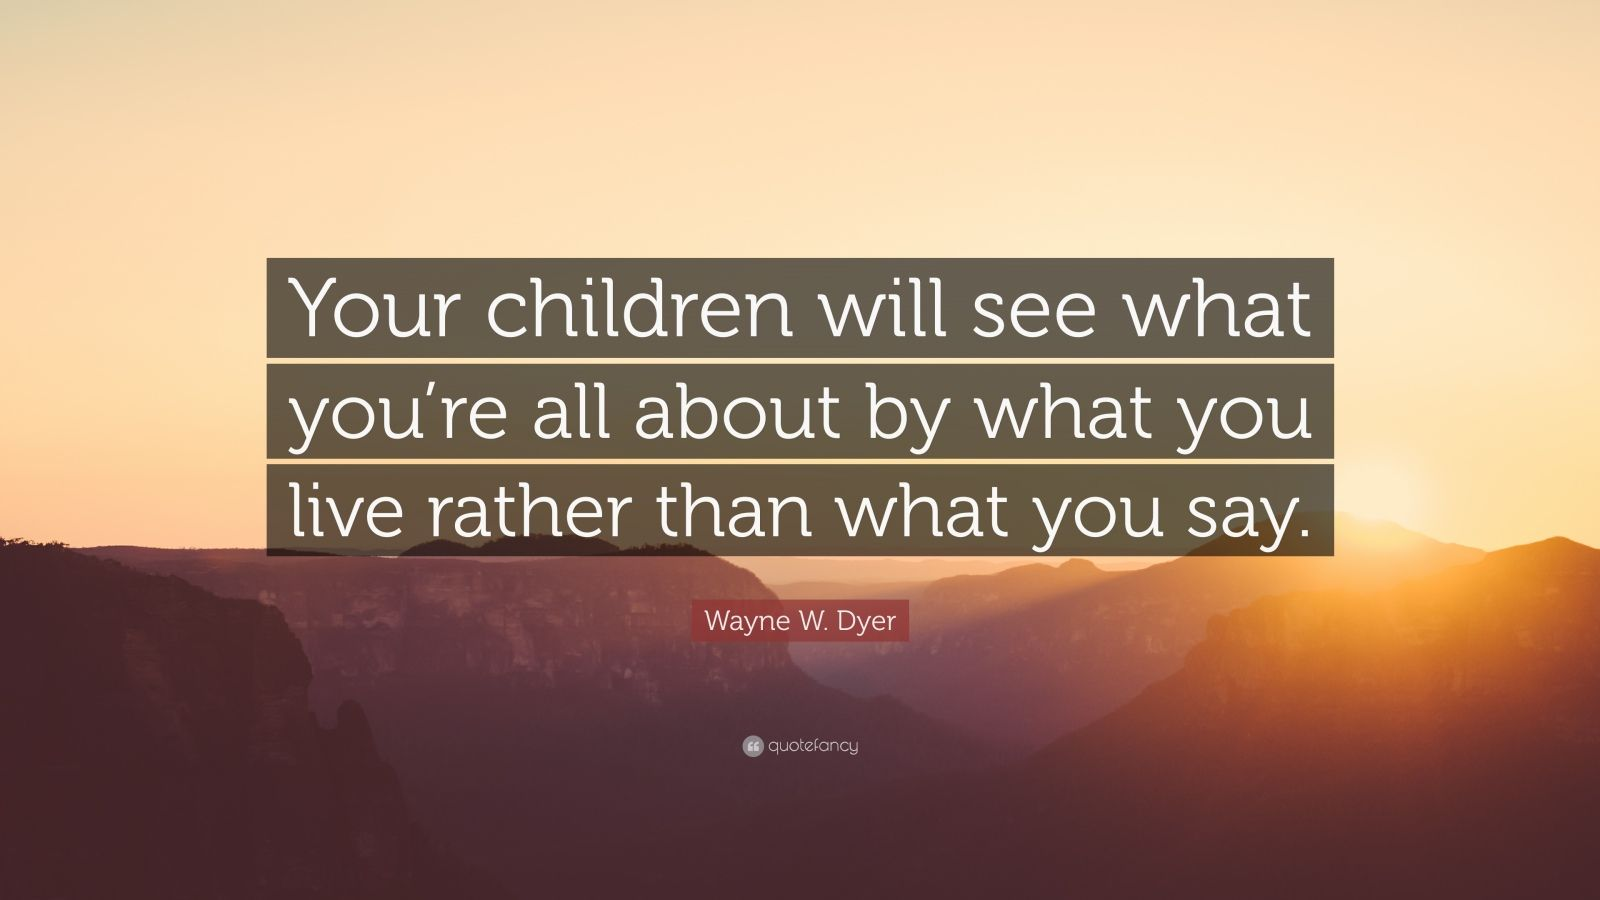 """Wayne W. Dyer Quote: """"Your children will see what you're all about by what you live rather than what you say."""""""